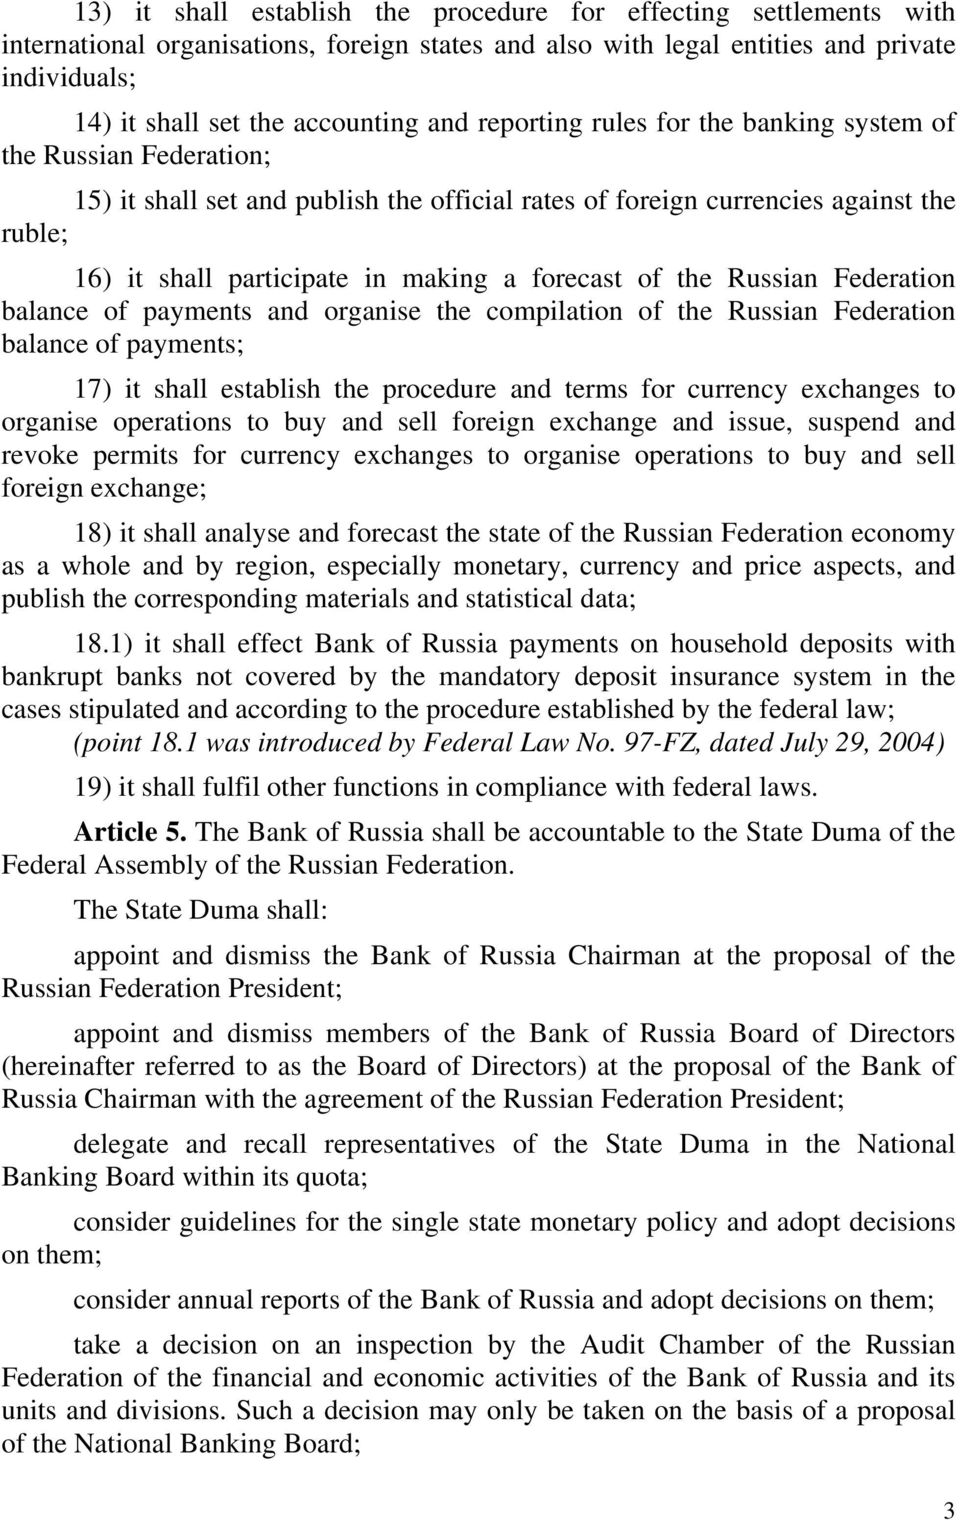 forecast of the Russian Federation balance of payments and organise the compilation of the Russian Federation balance of payments; 17) it shall establish the procedure and terms for currency